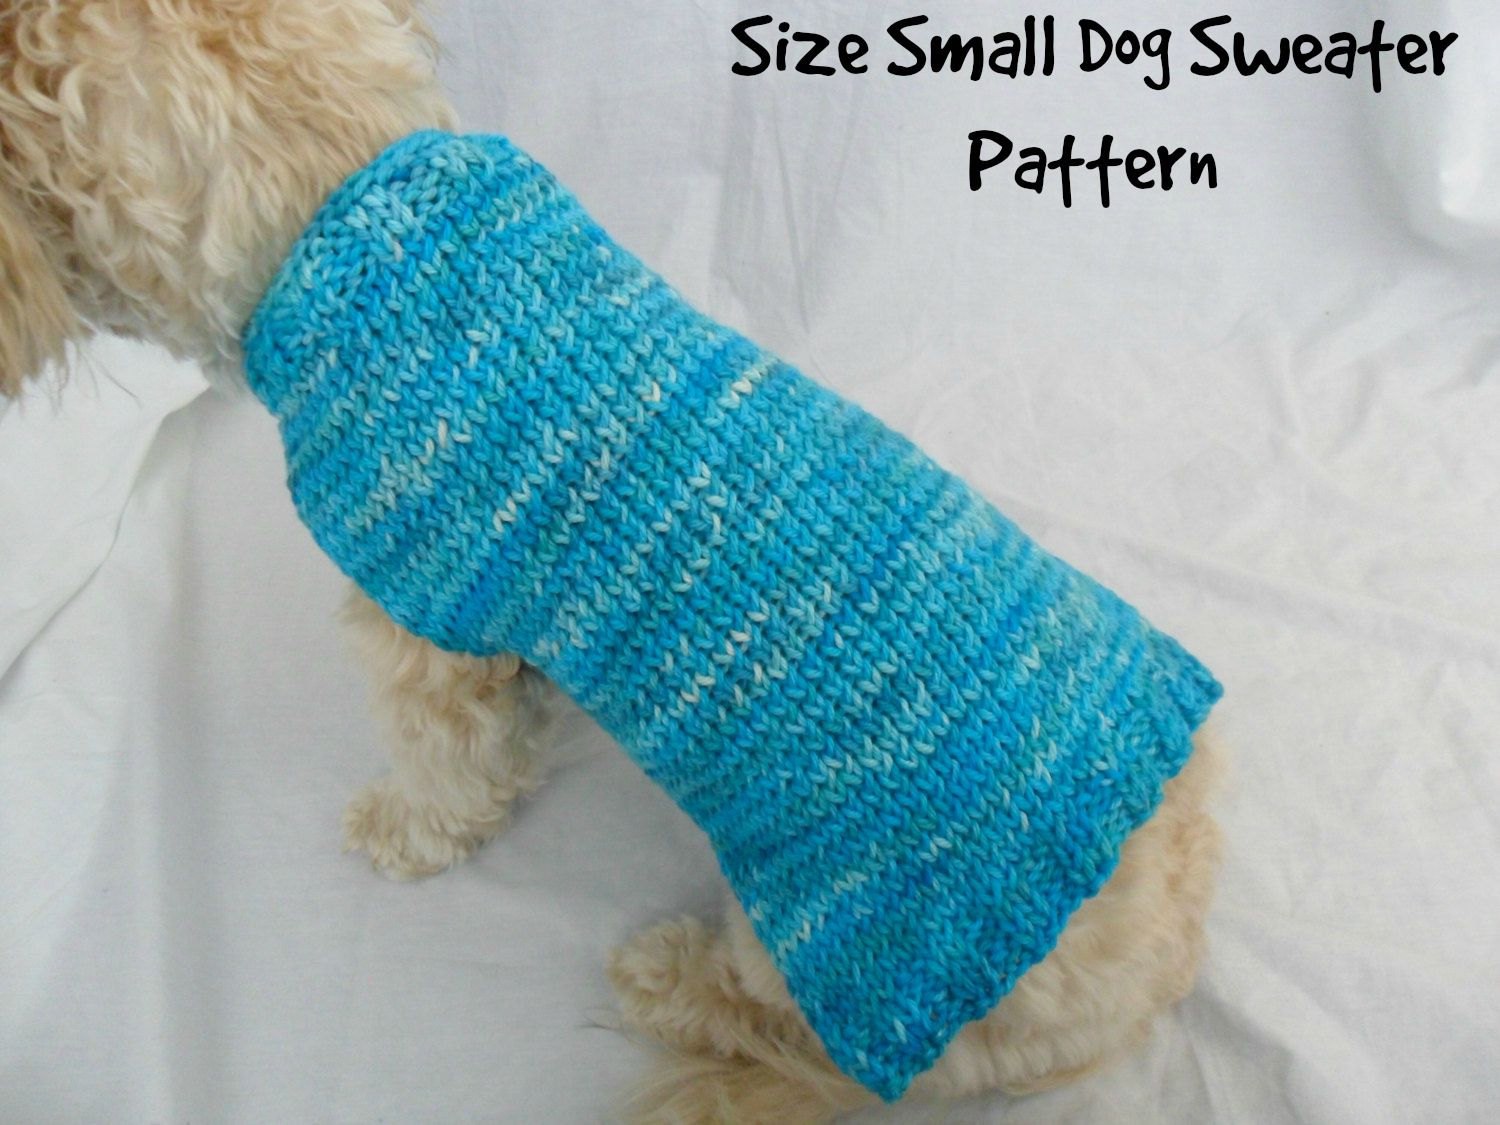 Dog Sweater Knitting Patterns Simple Dog Sweater Knitting Pattern Pdf Small Dog Sweater